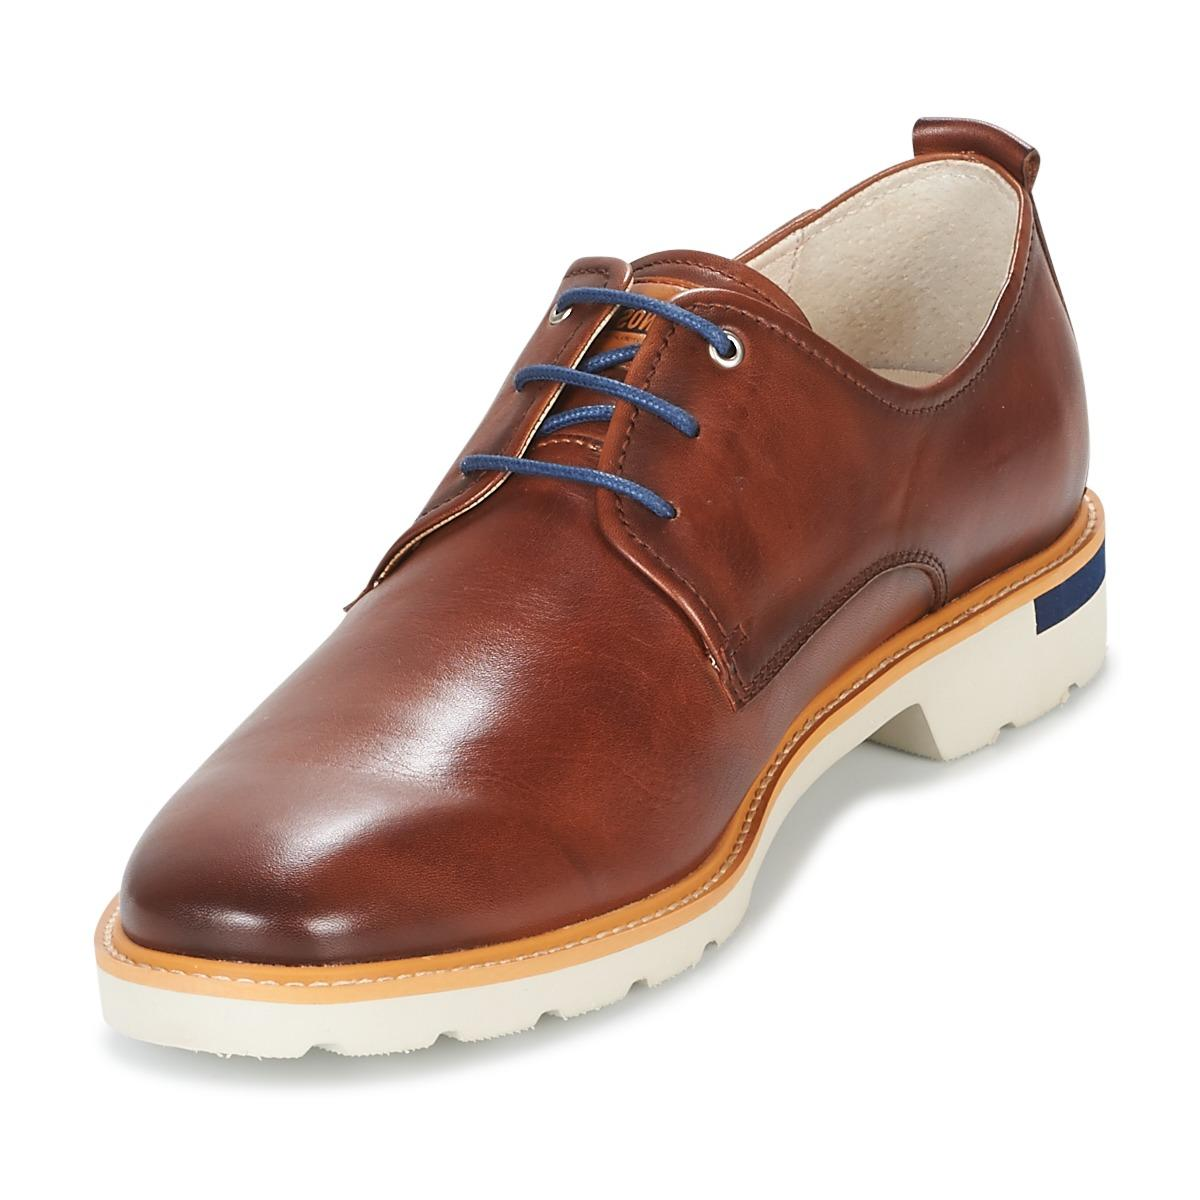 Pikolinos Leather Salou M9j Casual Shoes in Brown for Men